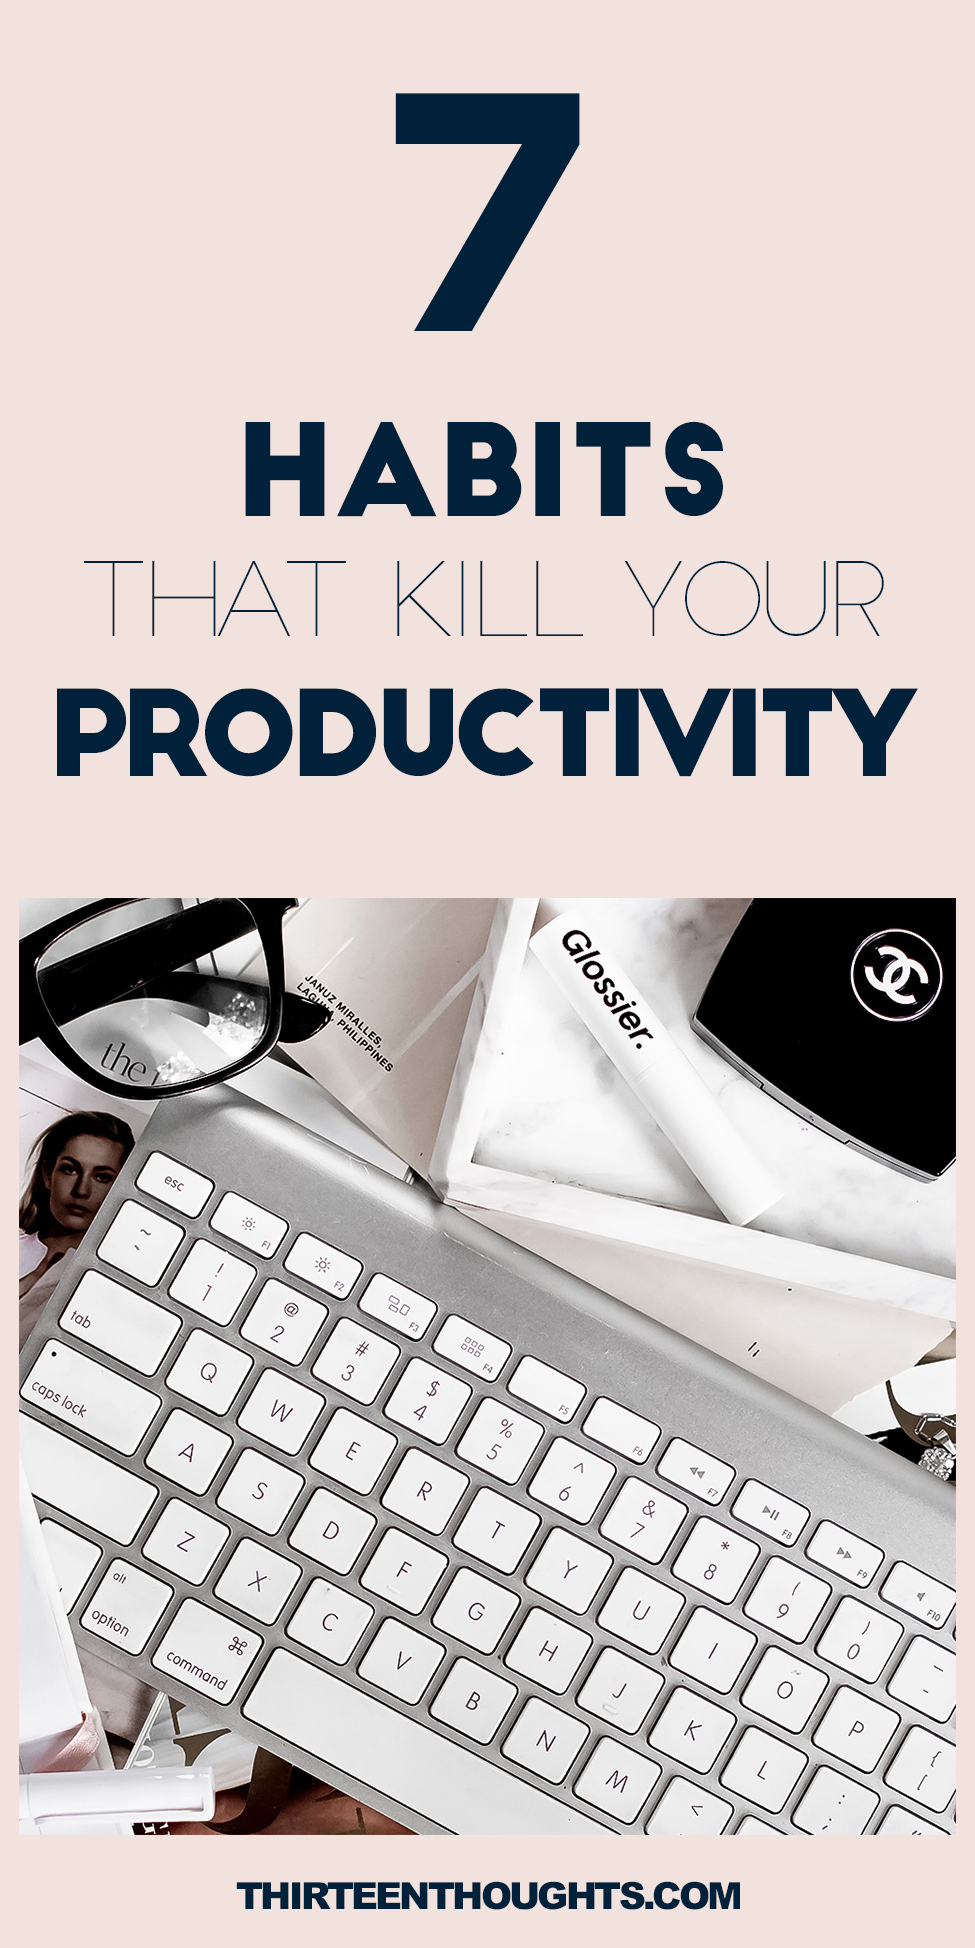 7 Habits That Kill Your Productivity #Productivity